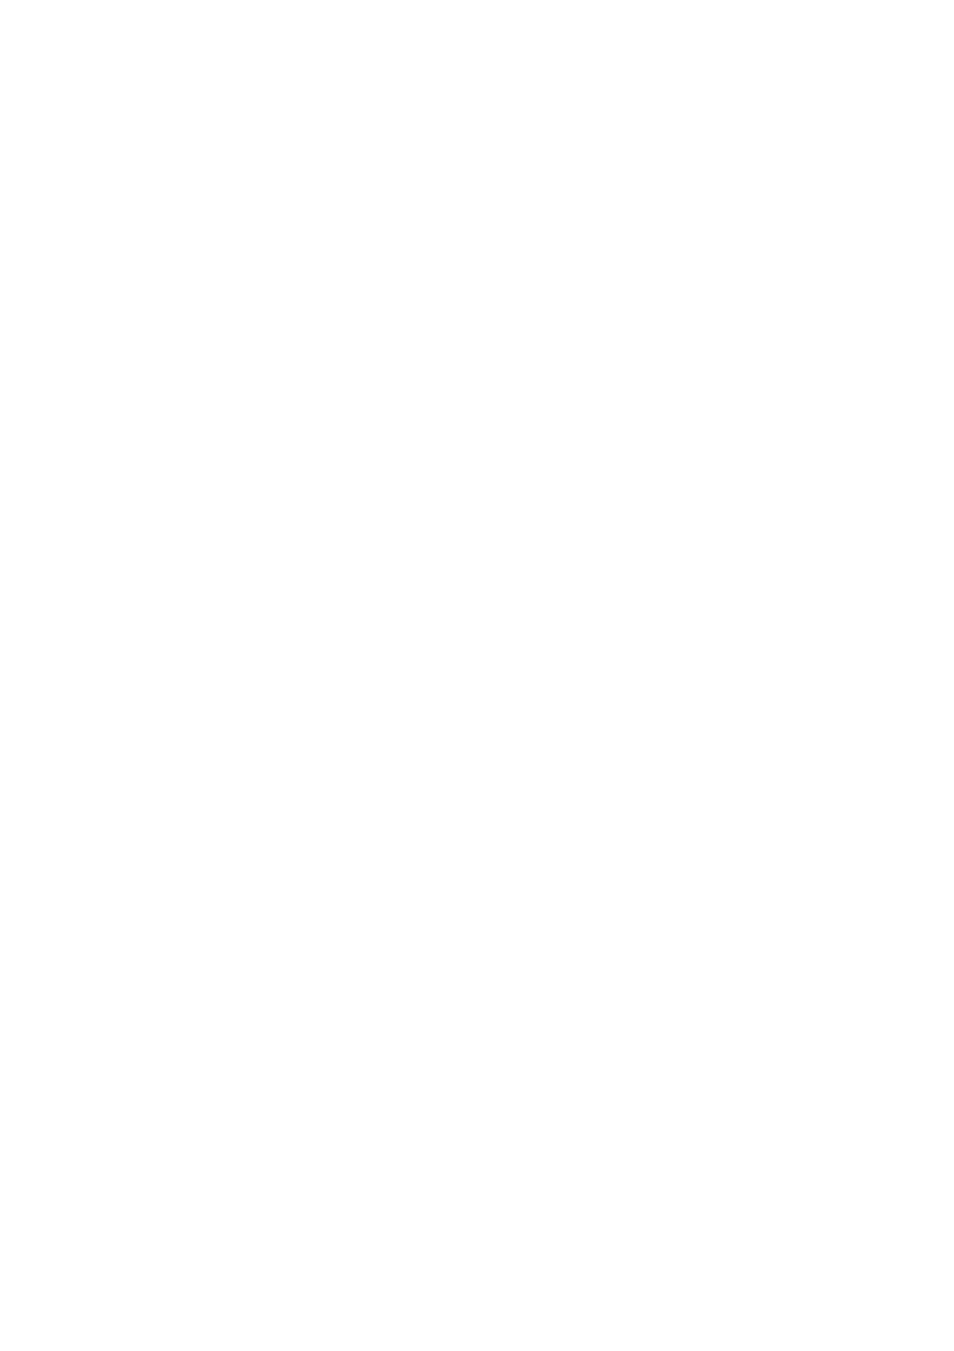 Carrier PRO-DIALOG 30GK User Manual | Page 4 / 36